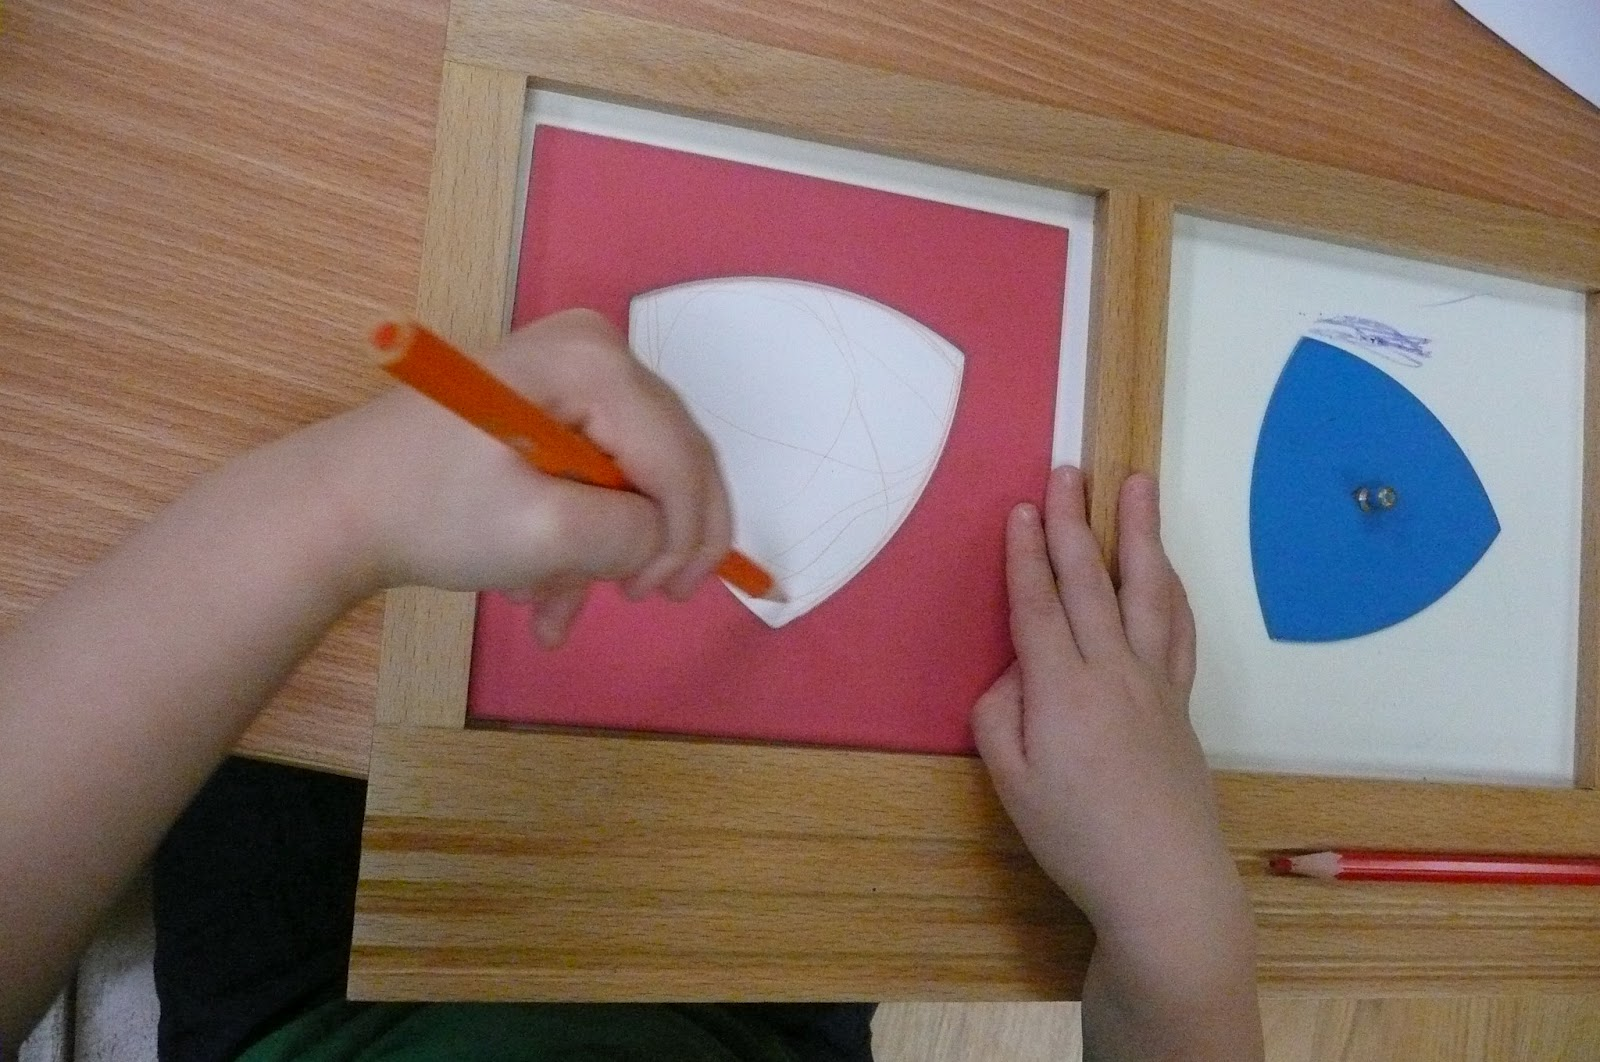 indirect preparation montessori Primary / kindergarten at casa dei bambini the montessori student is prepared for spelling and reading math: math principals are acquired through indirect preparation in the sensorial area and through manipulation exercises.